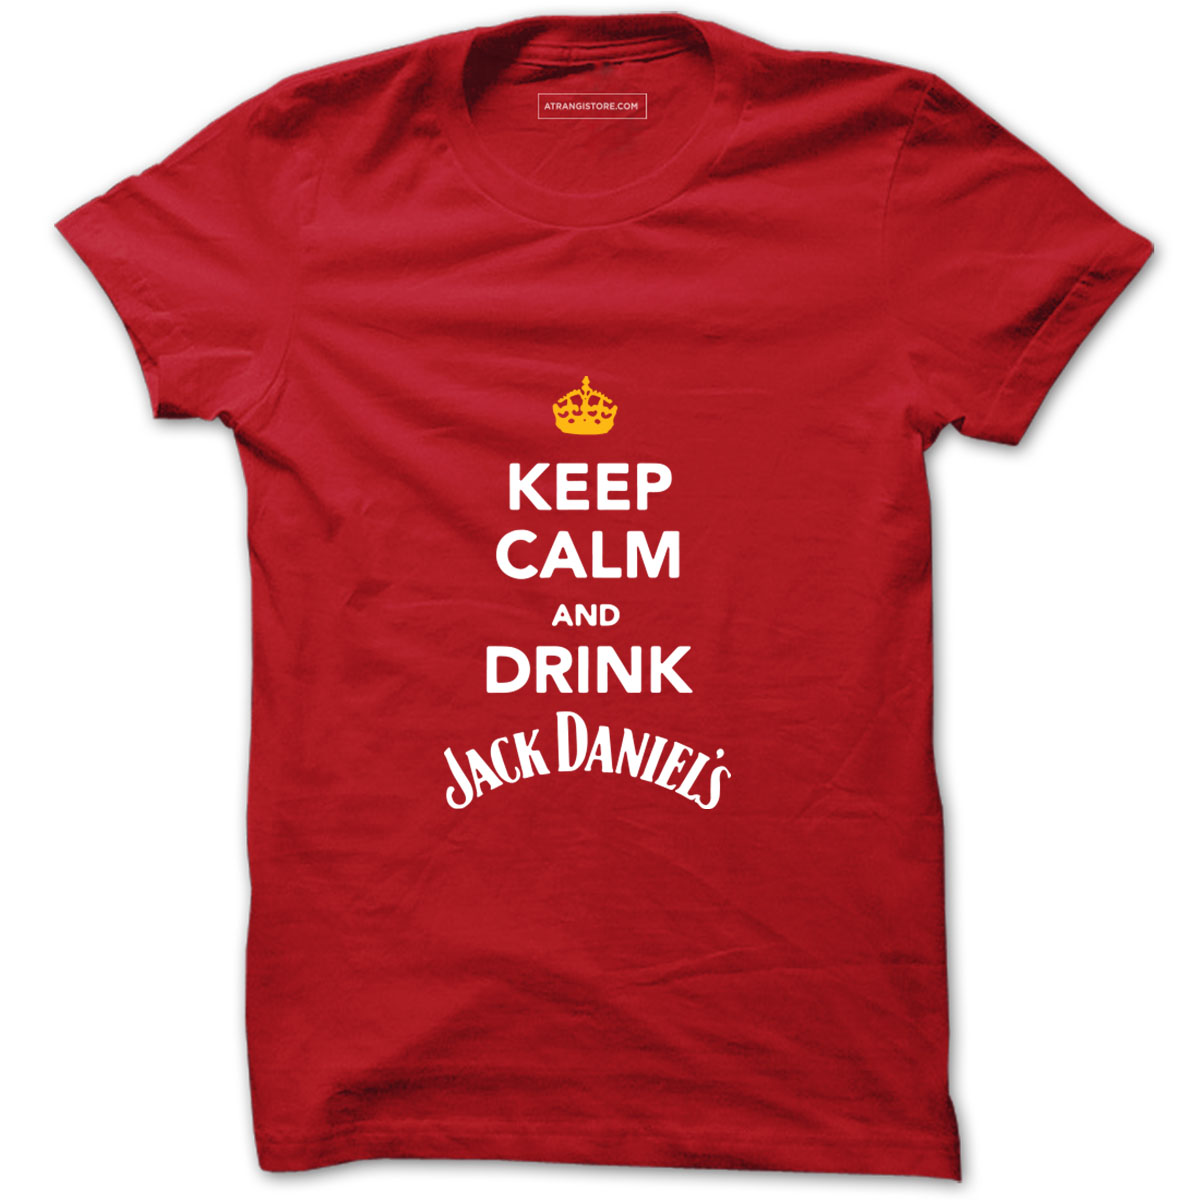 bc547940d604e3 Buy| T shirt| Alcohol| Stoner| Drink| Jack Daniels| Men| Women| India